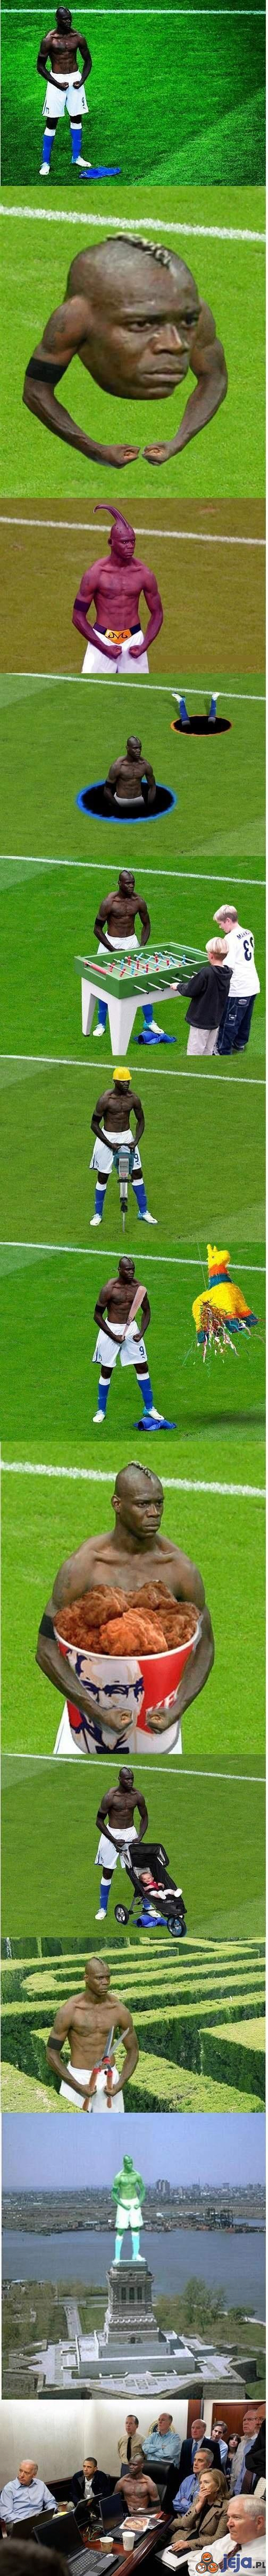 Mario Balotelli vs Photoshop